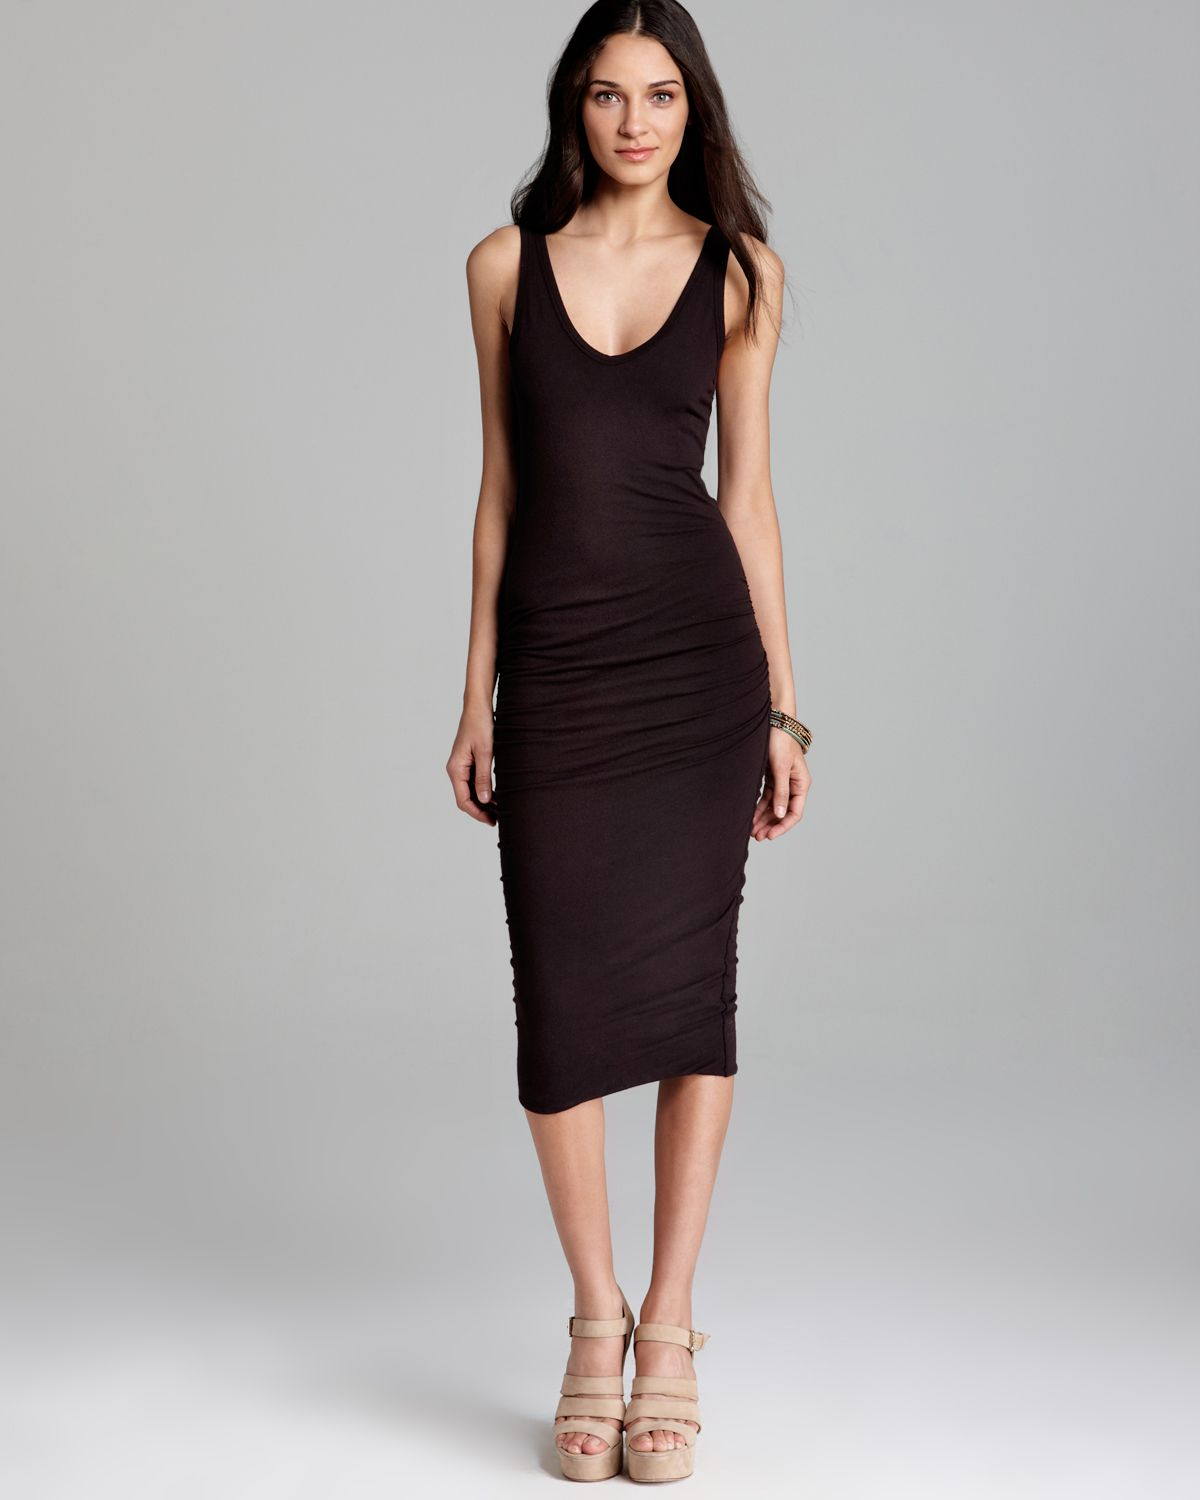 8f7336cdce8dc4 James Perse Tank Dress Skinny Ruched in Black - Lyst